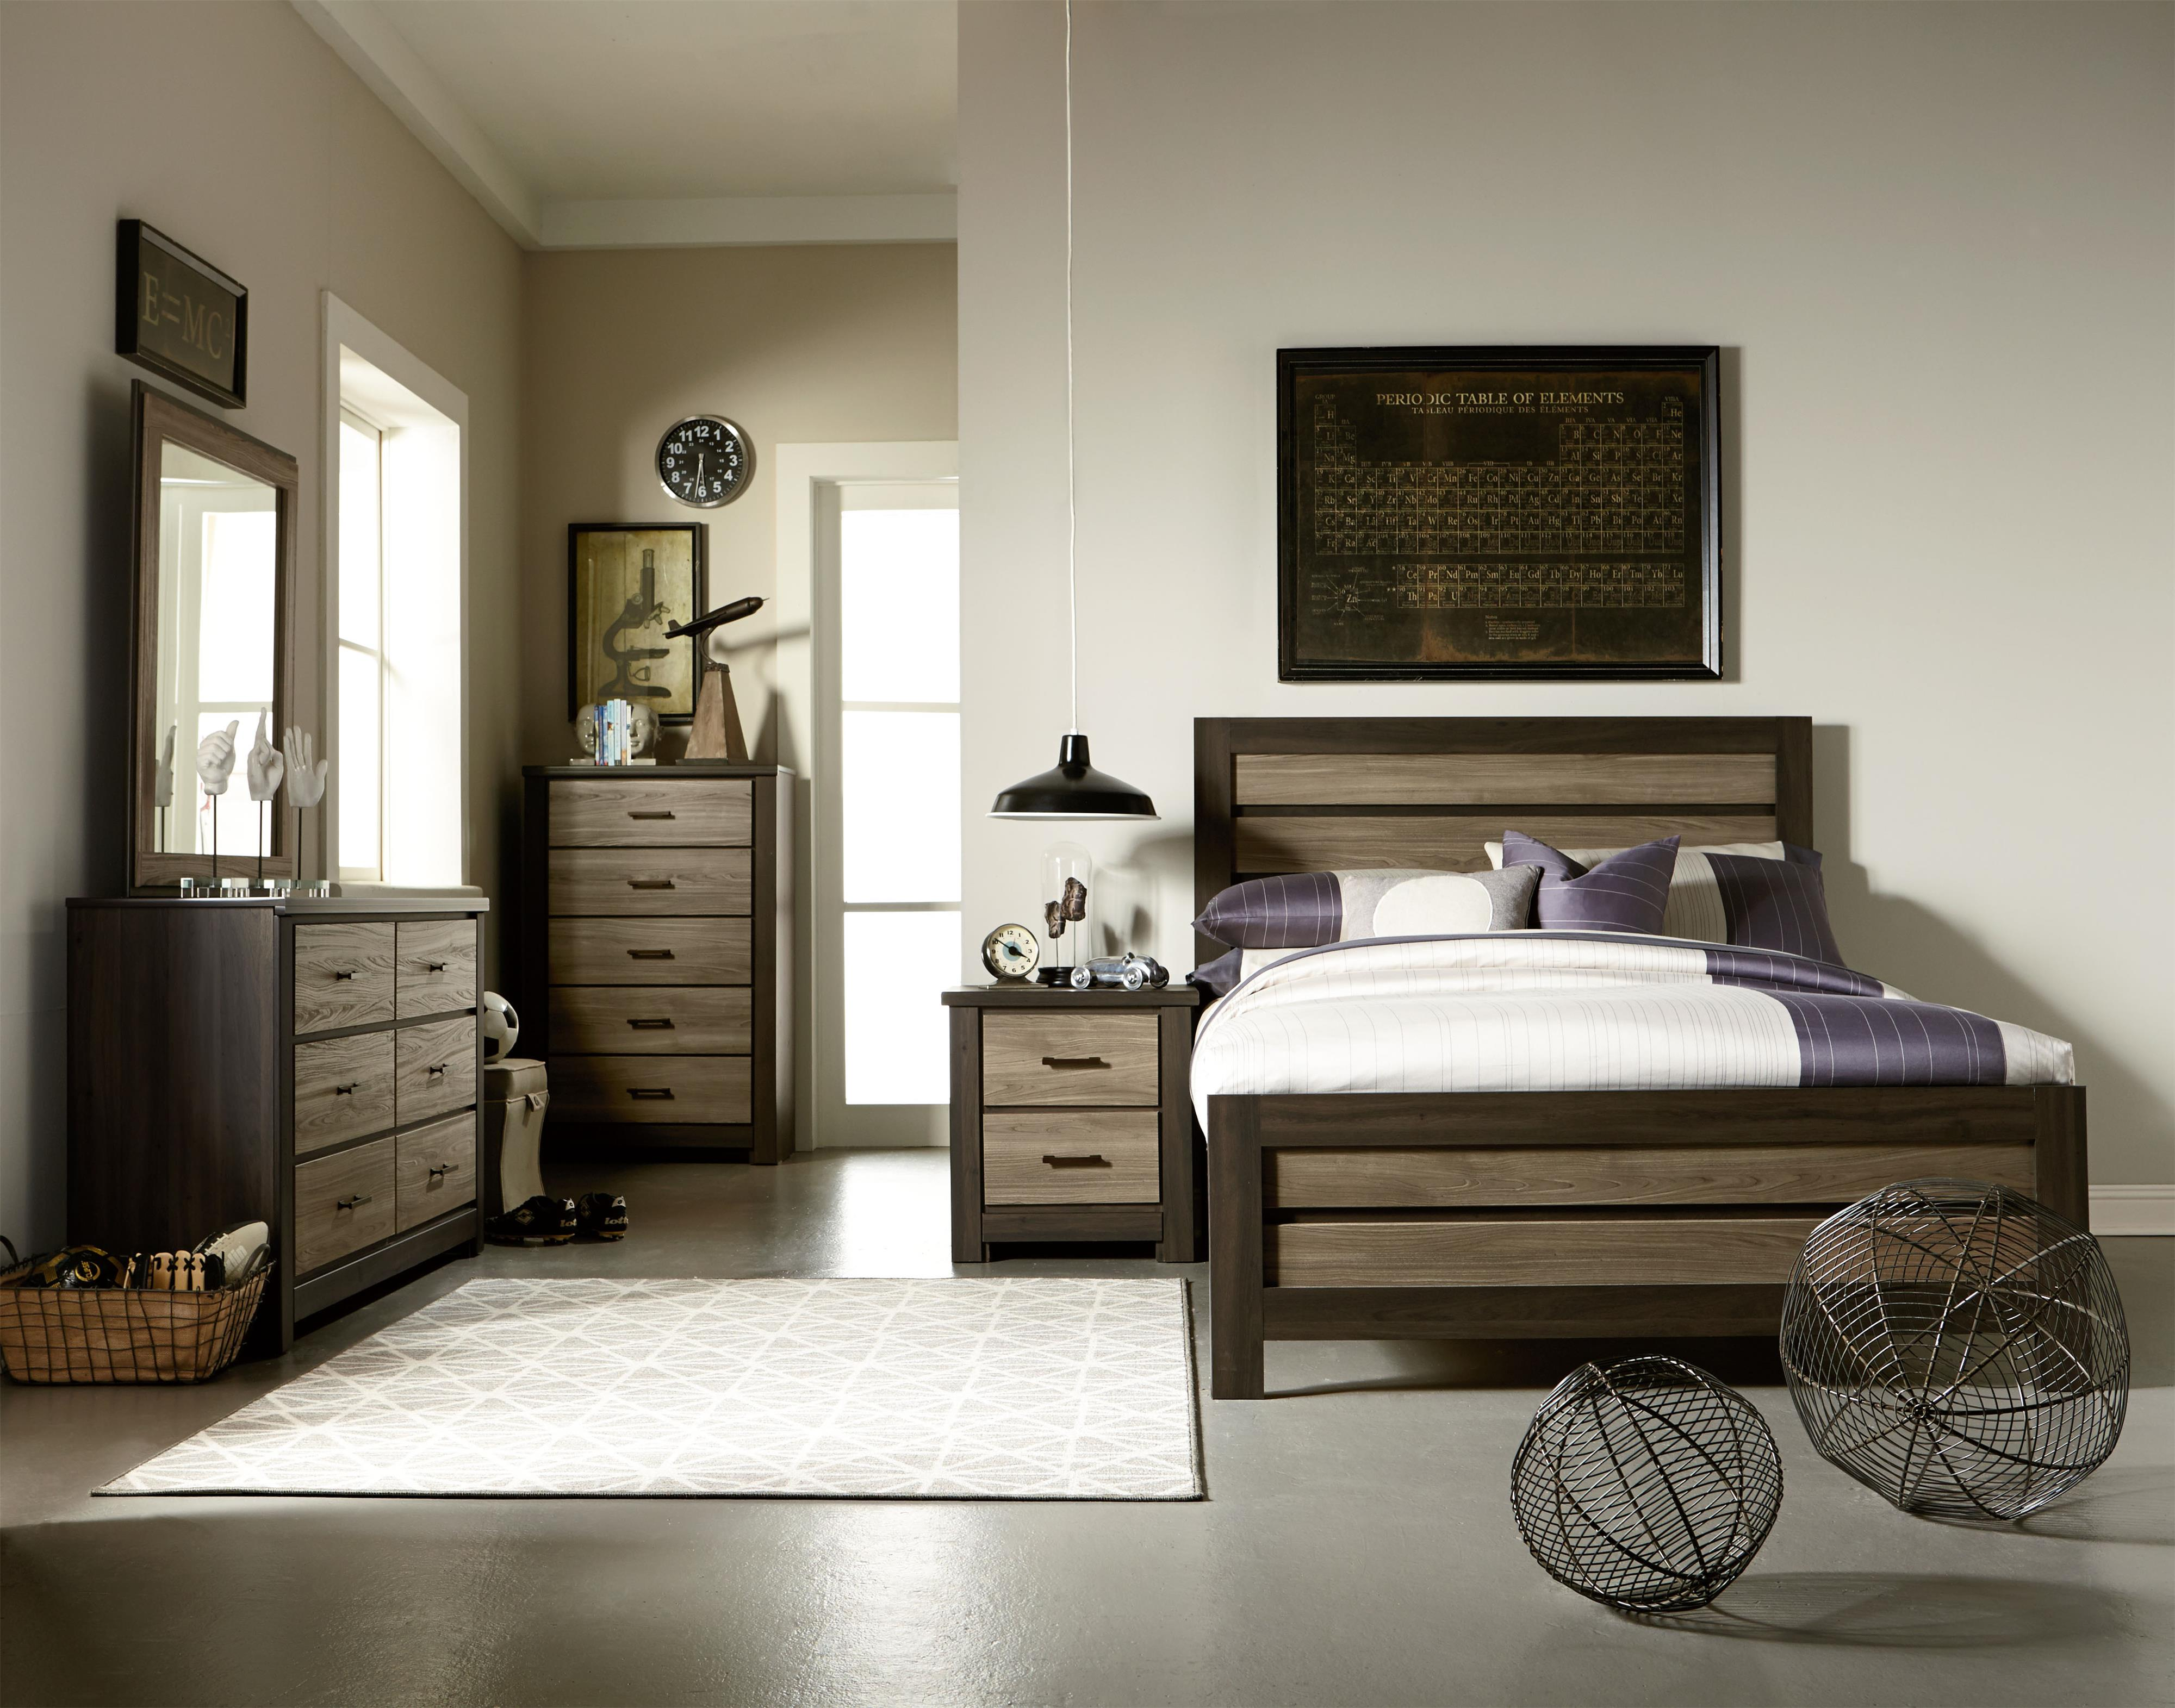 Standard Furniture Oakland Full Bedroom Group - Item Number: 69700 F Bedroom Group 2